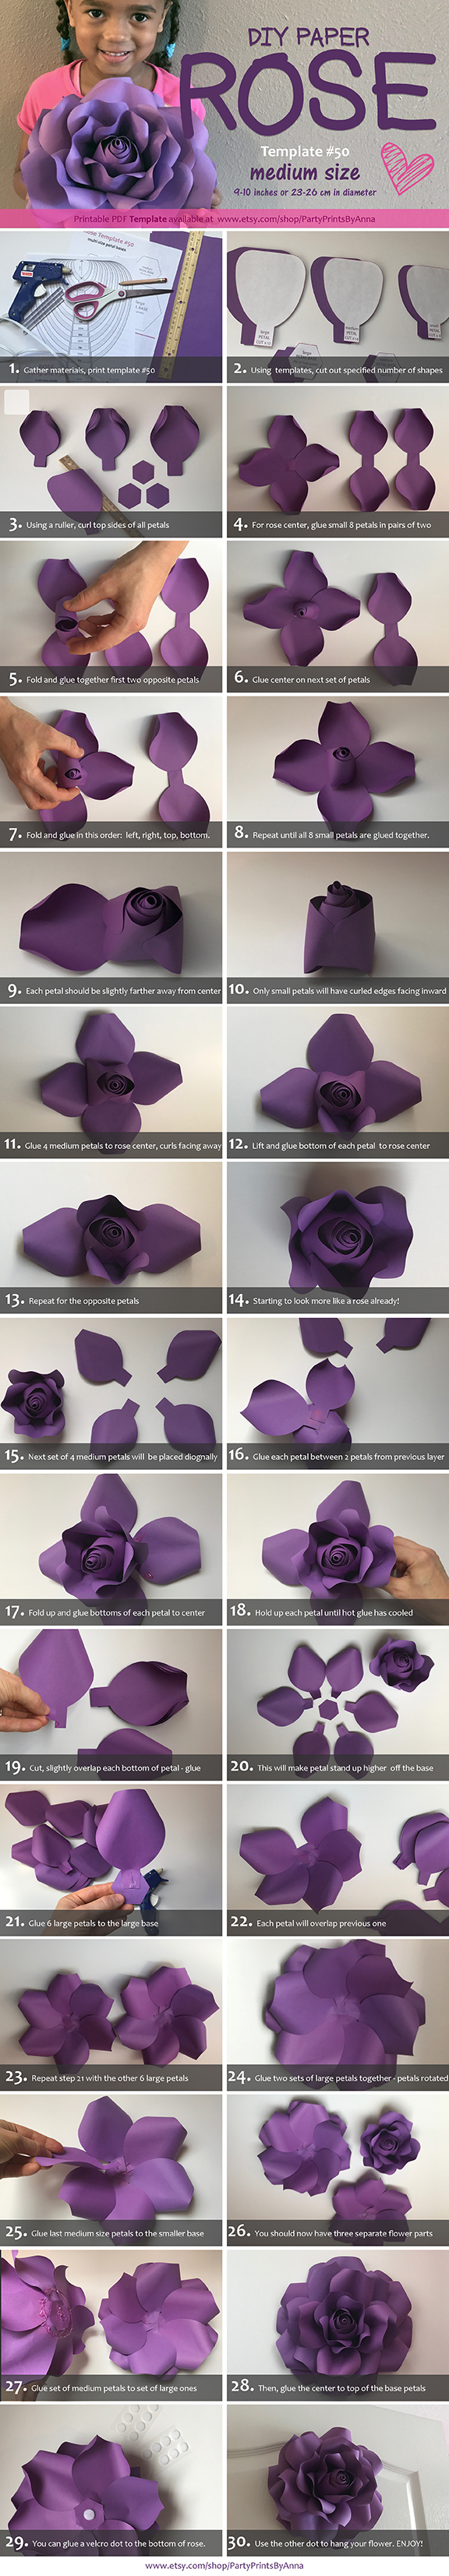 DIY Paper Flower Template - DIY Paper Rose Tutorial Template